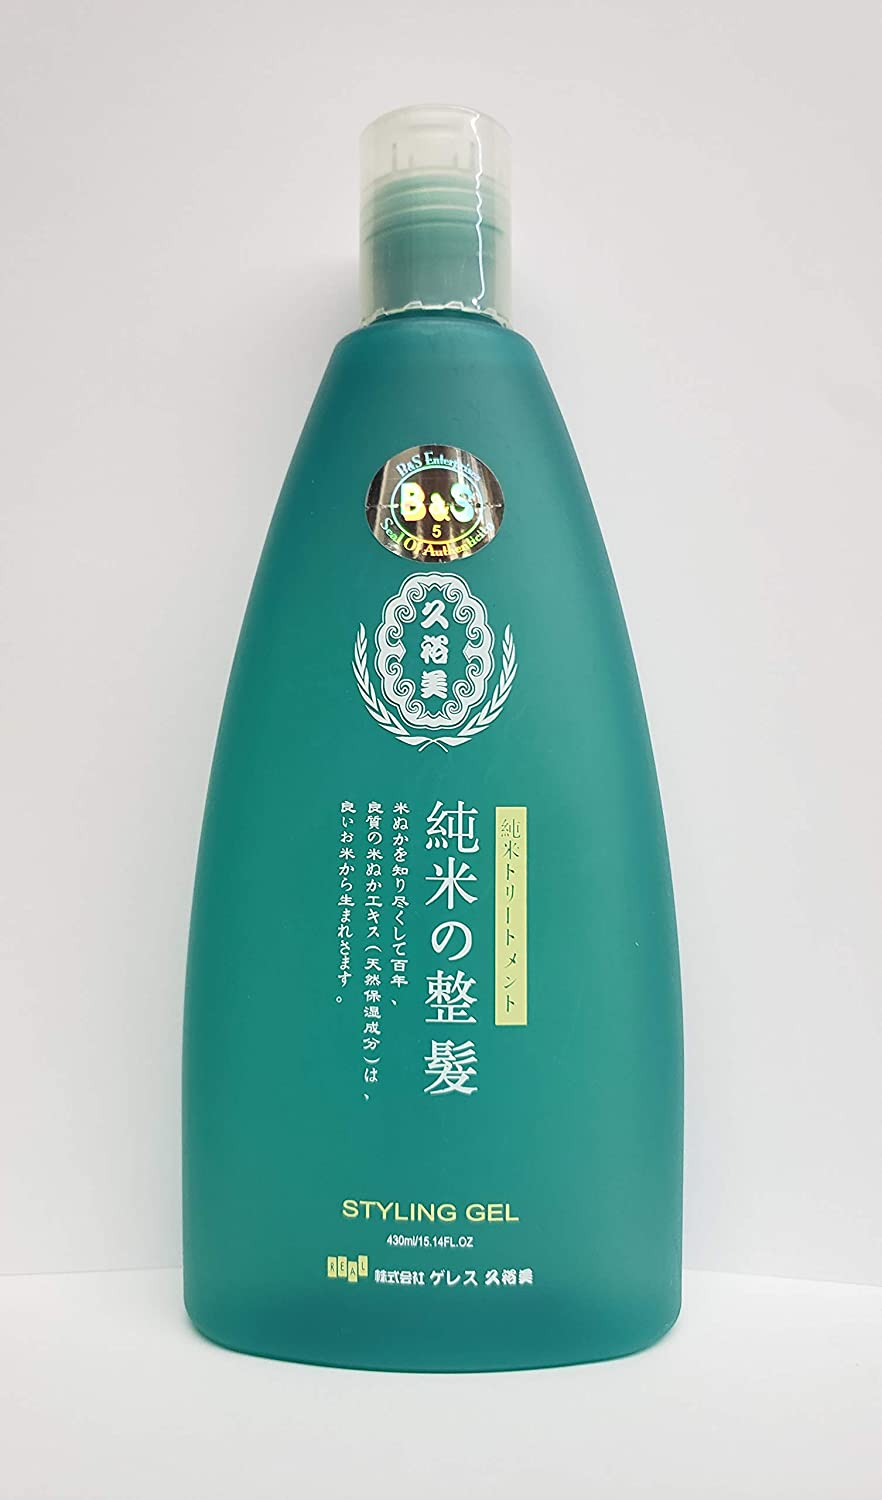 It is very popular Pure Rice Hair Styling Gel oz NEW before selling 15.14